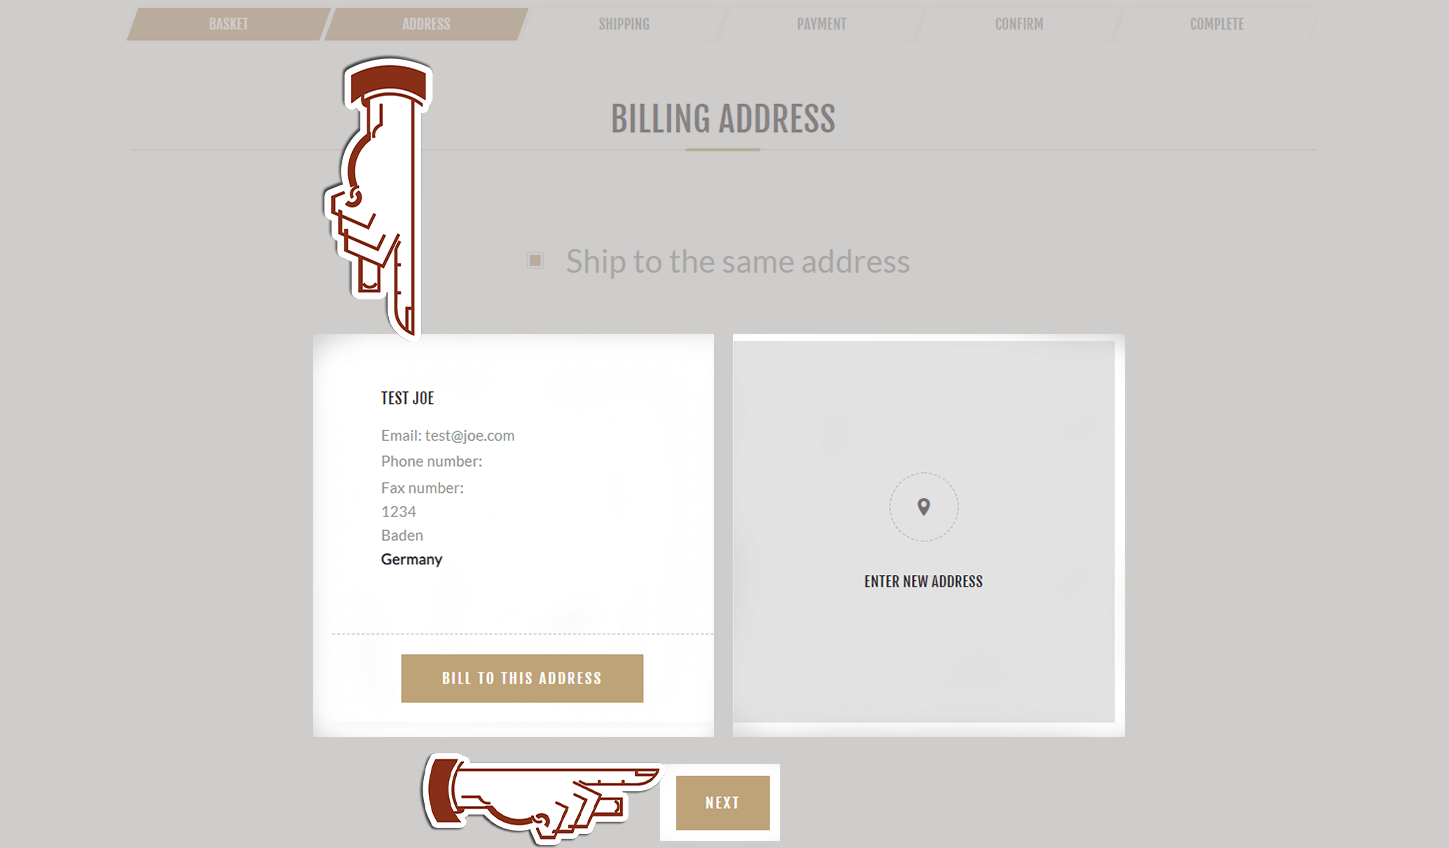 Giving billing address